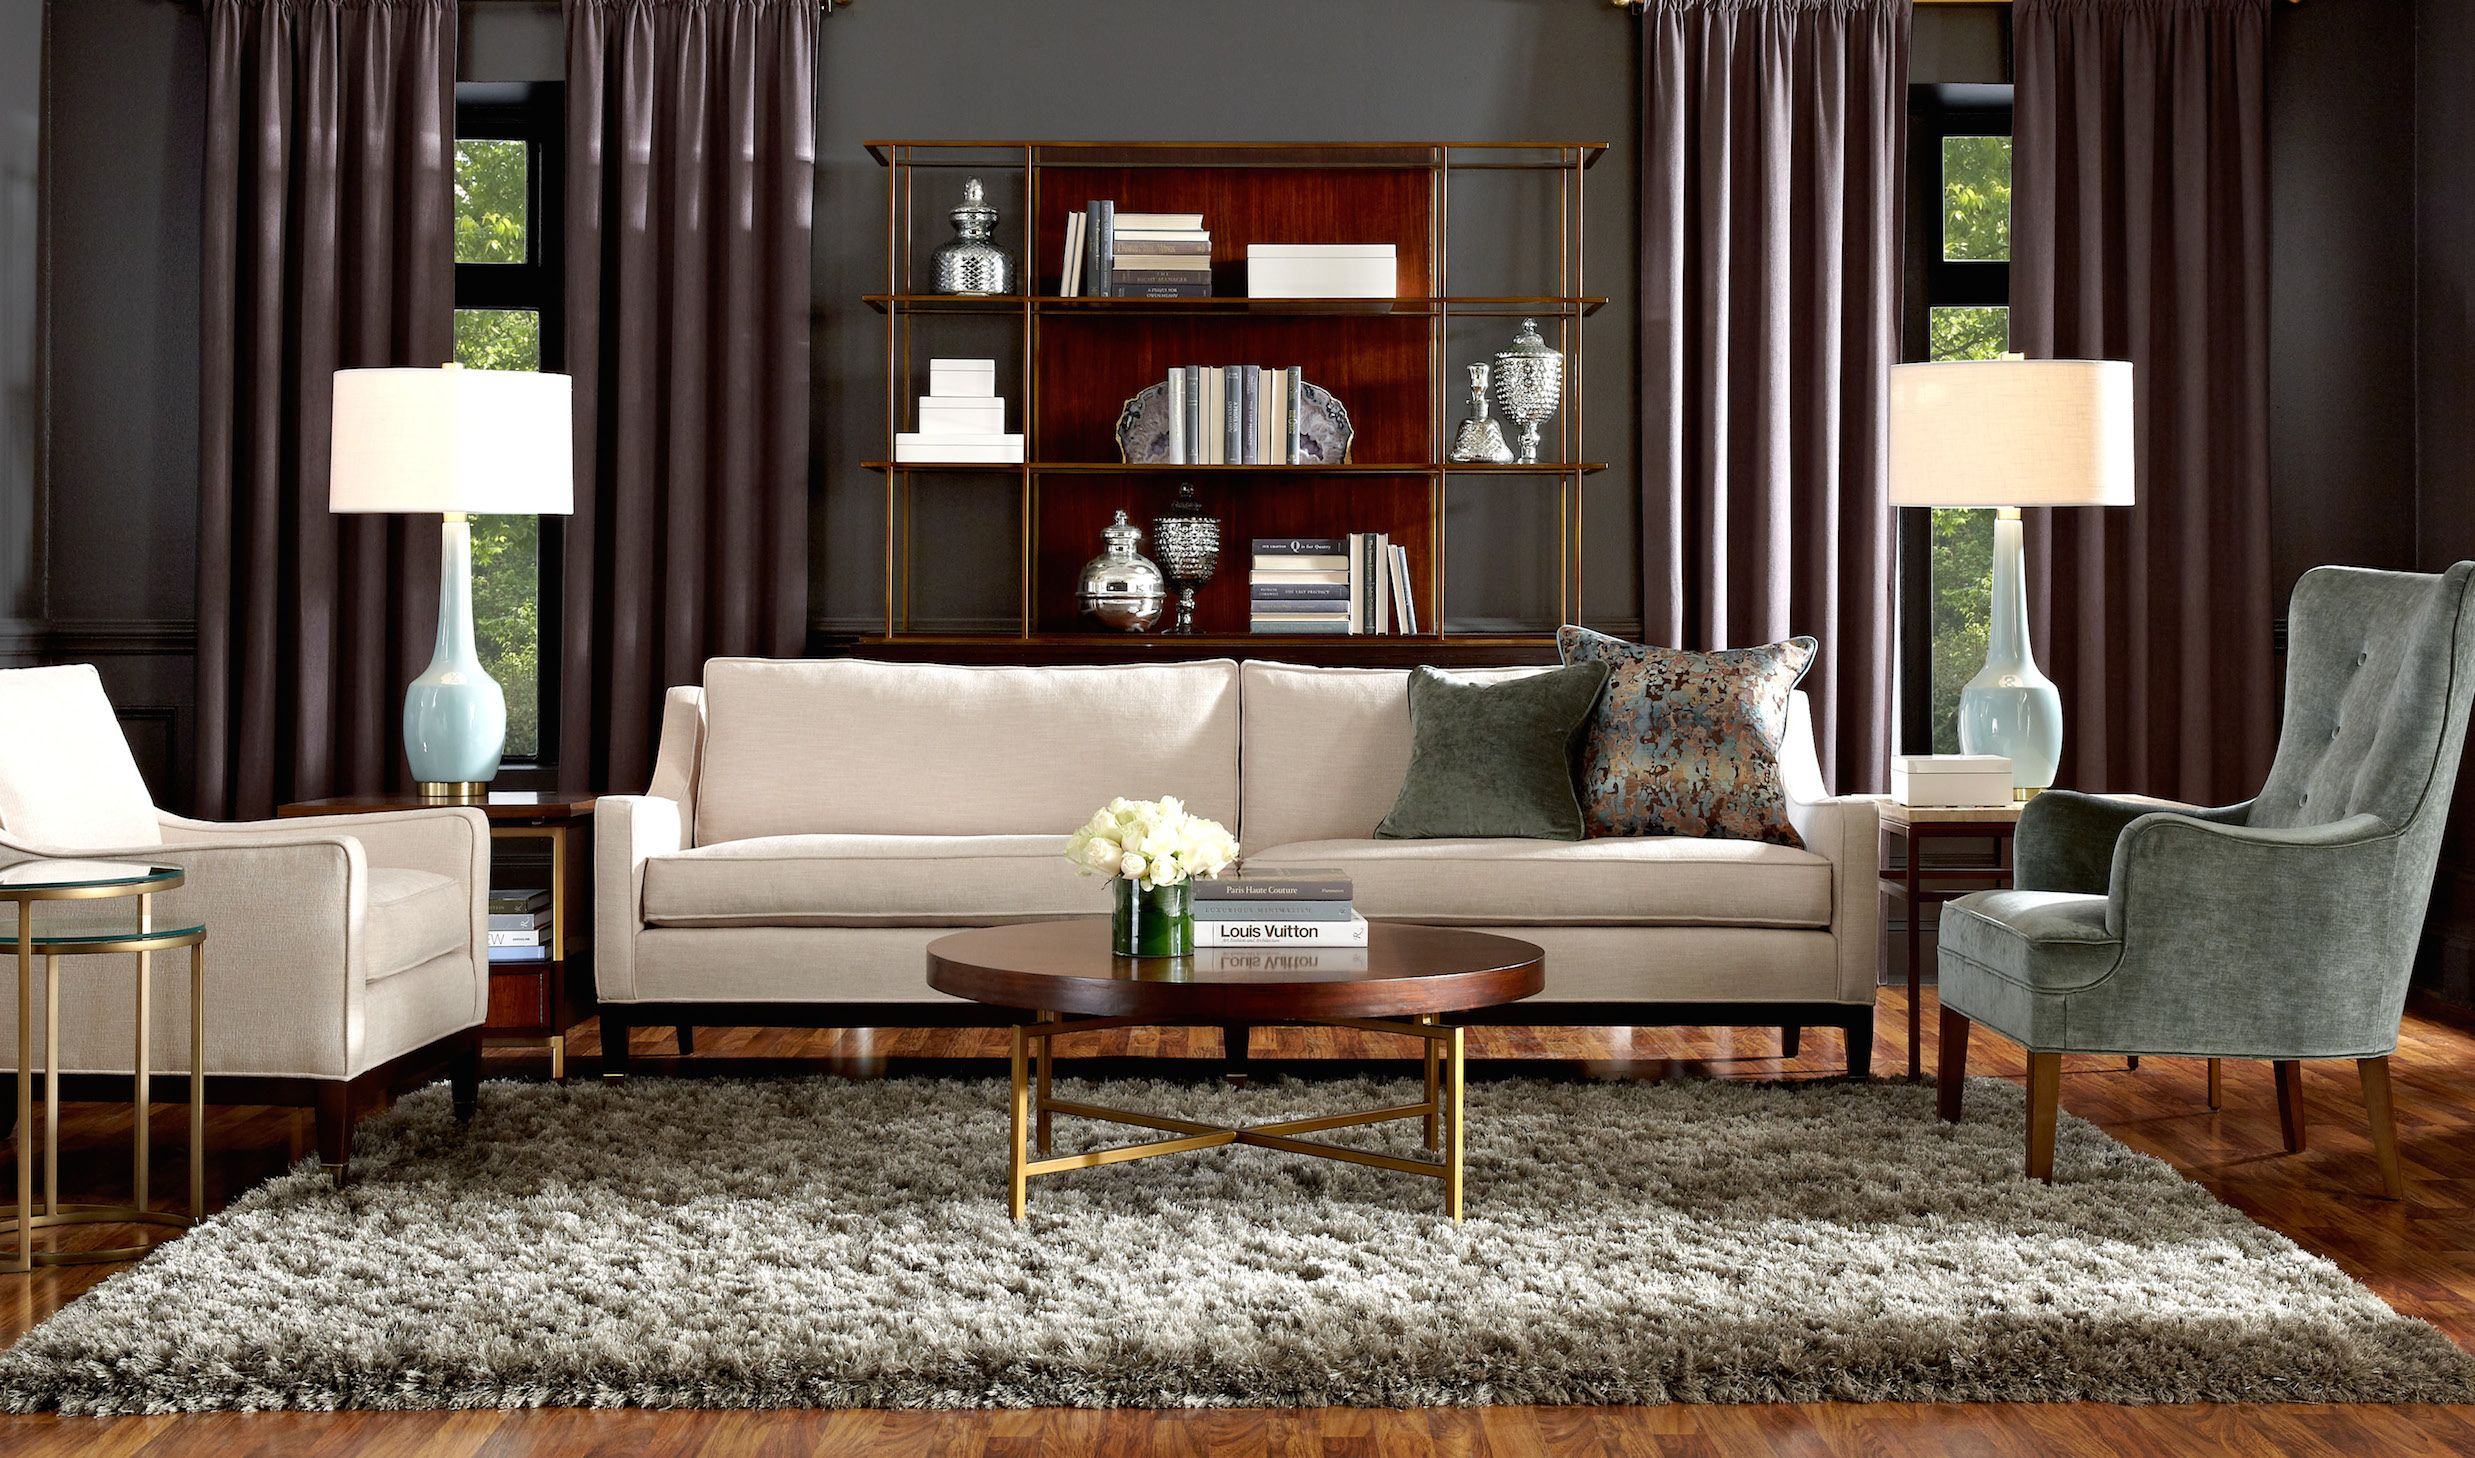 shop smart tips for your trip to hickory furniture mart visitnc com rh visitnc com